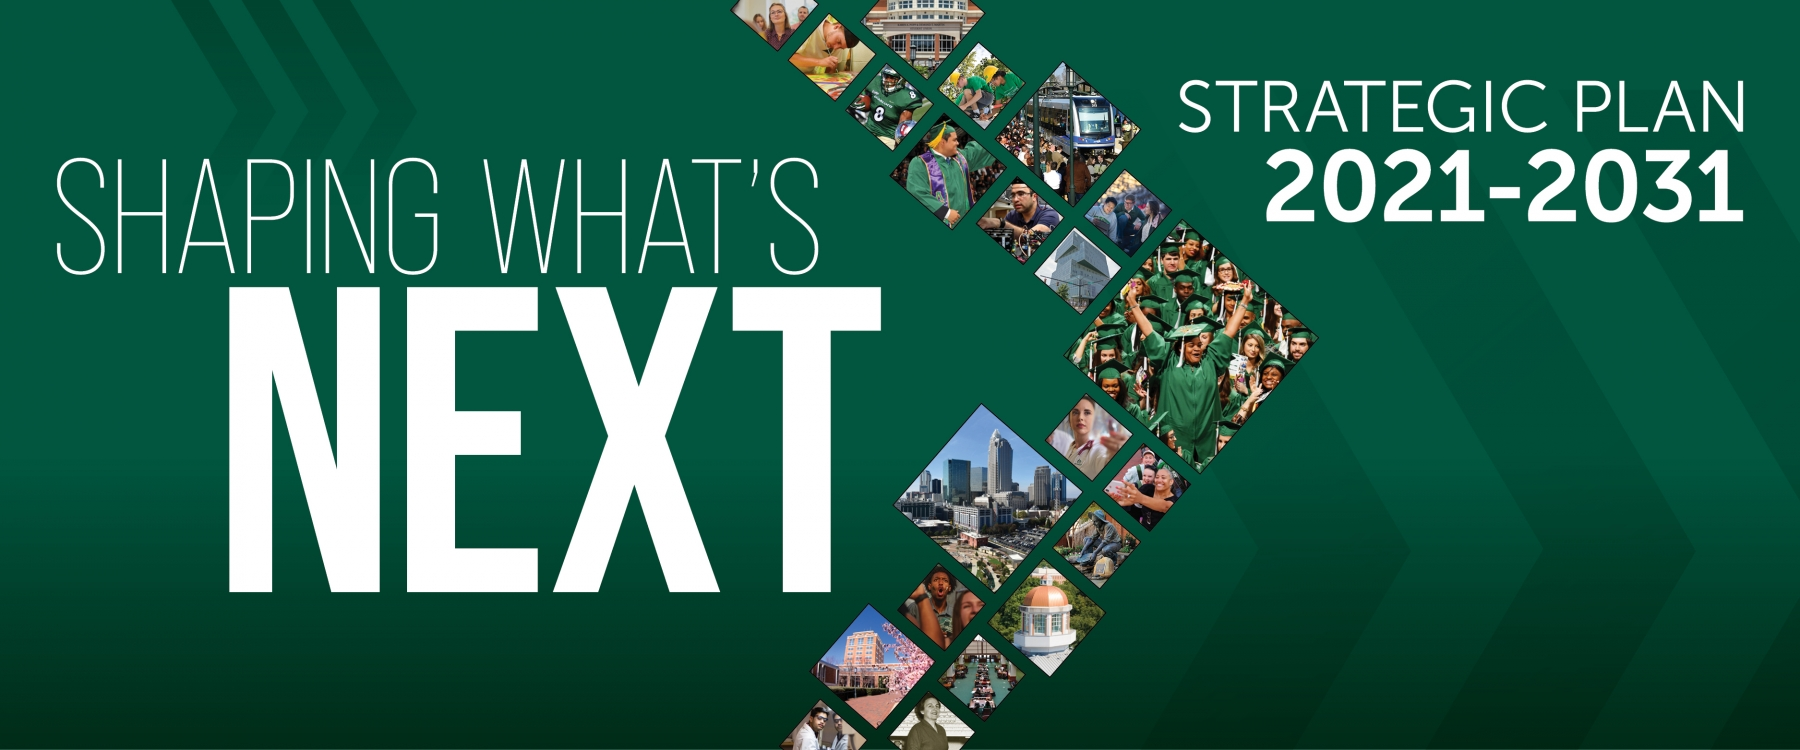 Shaping What's Next - UNC Charlotte's Strategic Plan 2021-2031